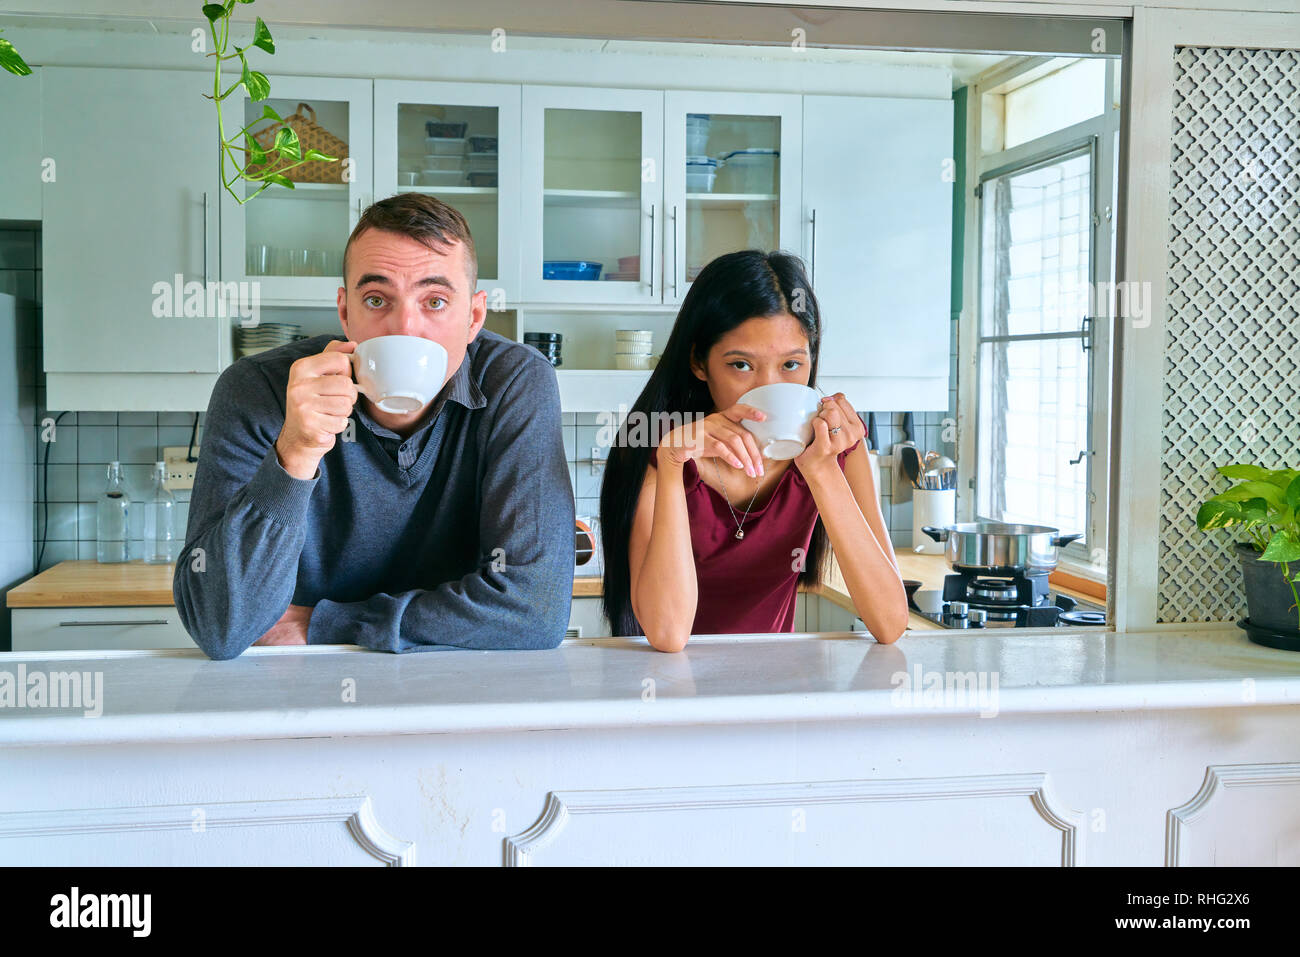 Lovely couple posing - drinking coffee and looking at camera - Stock Image